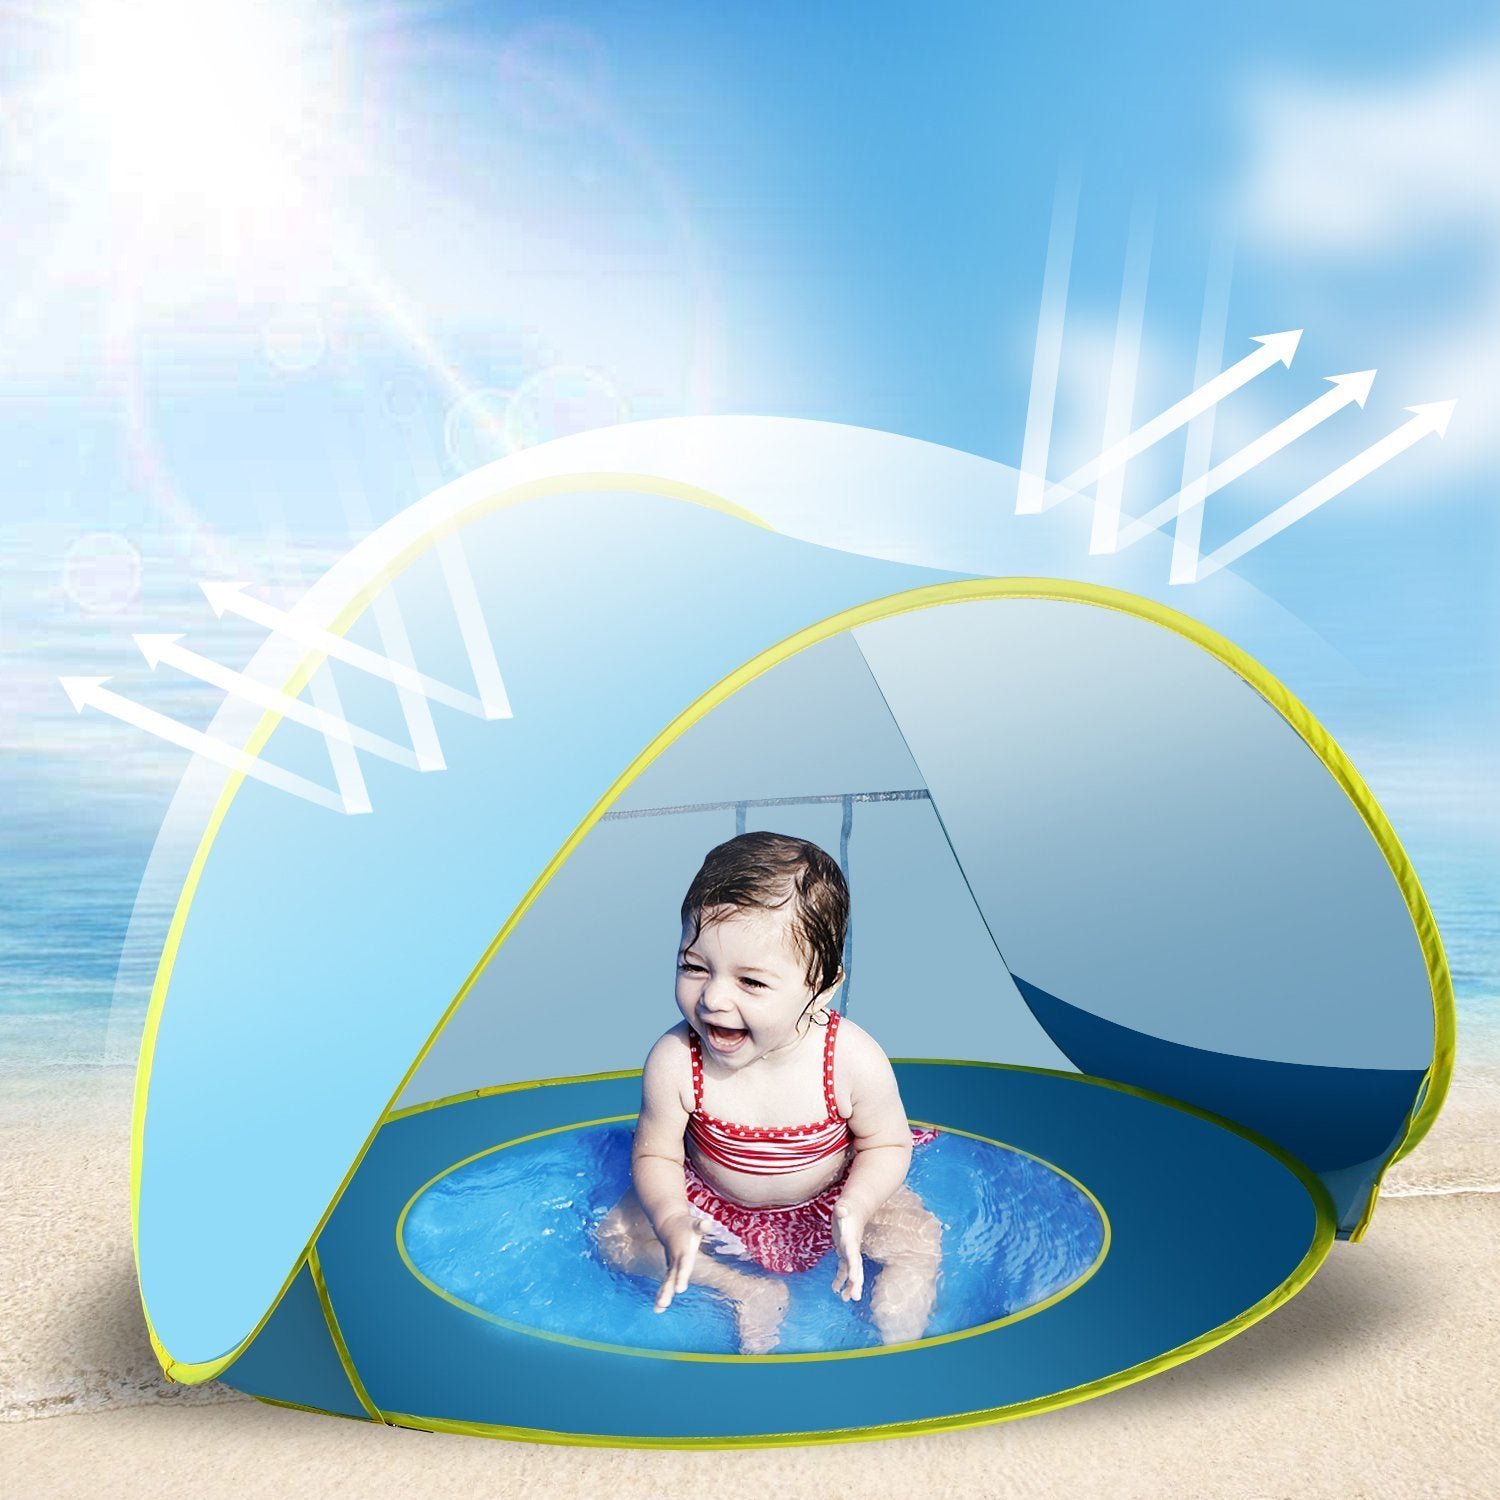 Pop Up Baby Beach Tent Portable Infant Sun Shelter Play Beach Tent with Kiddie PoolUV Protection by VicPow  sc 1 st  VicPow & Portable Pop Up Baby Beach Tent Infant Sun Shelter with Kiddie ...